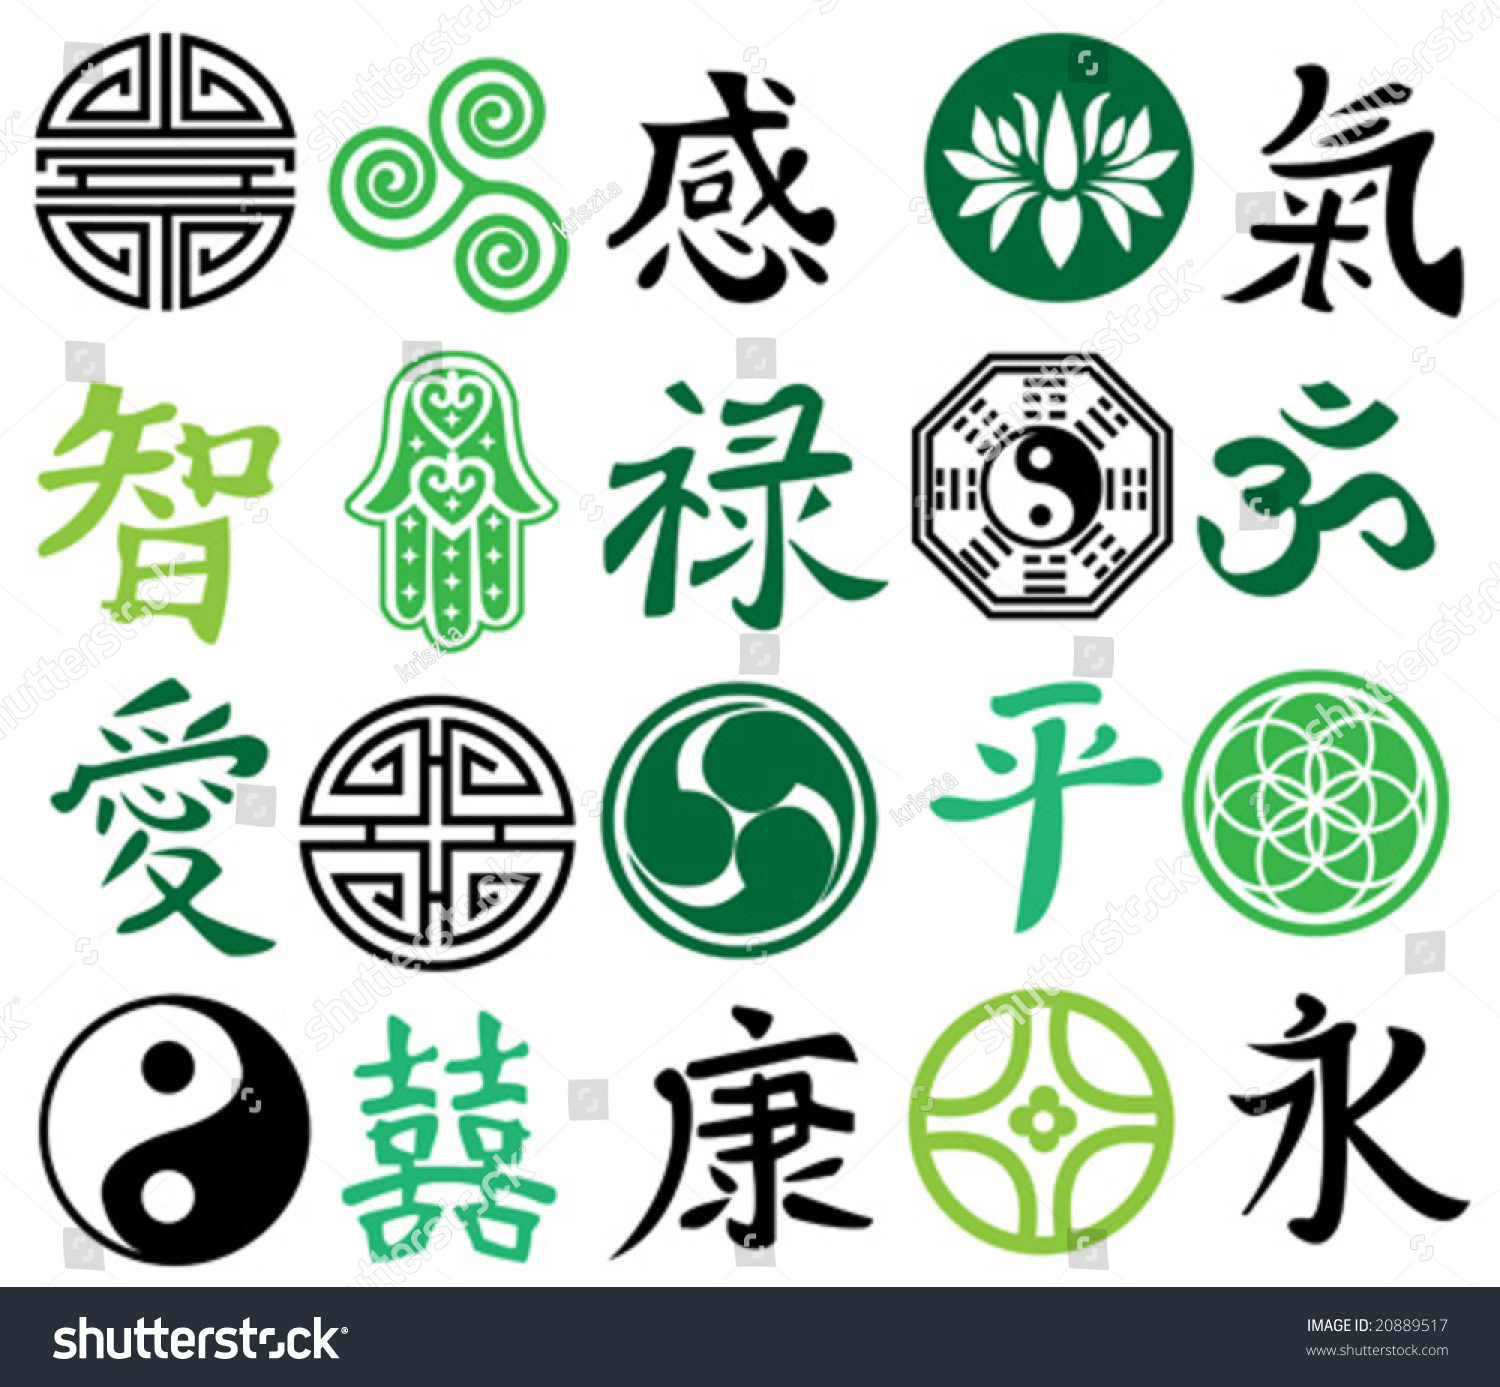 Fengshui symbols vector illustration stock vector 20889517 - Feng shui chinese symbols ...